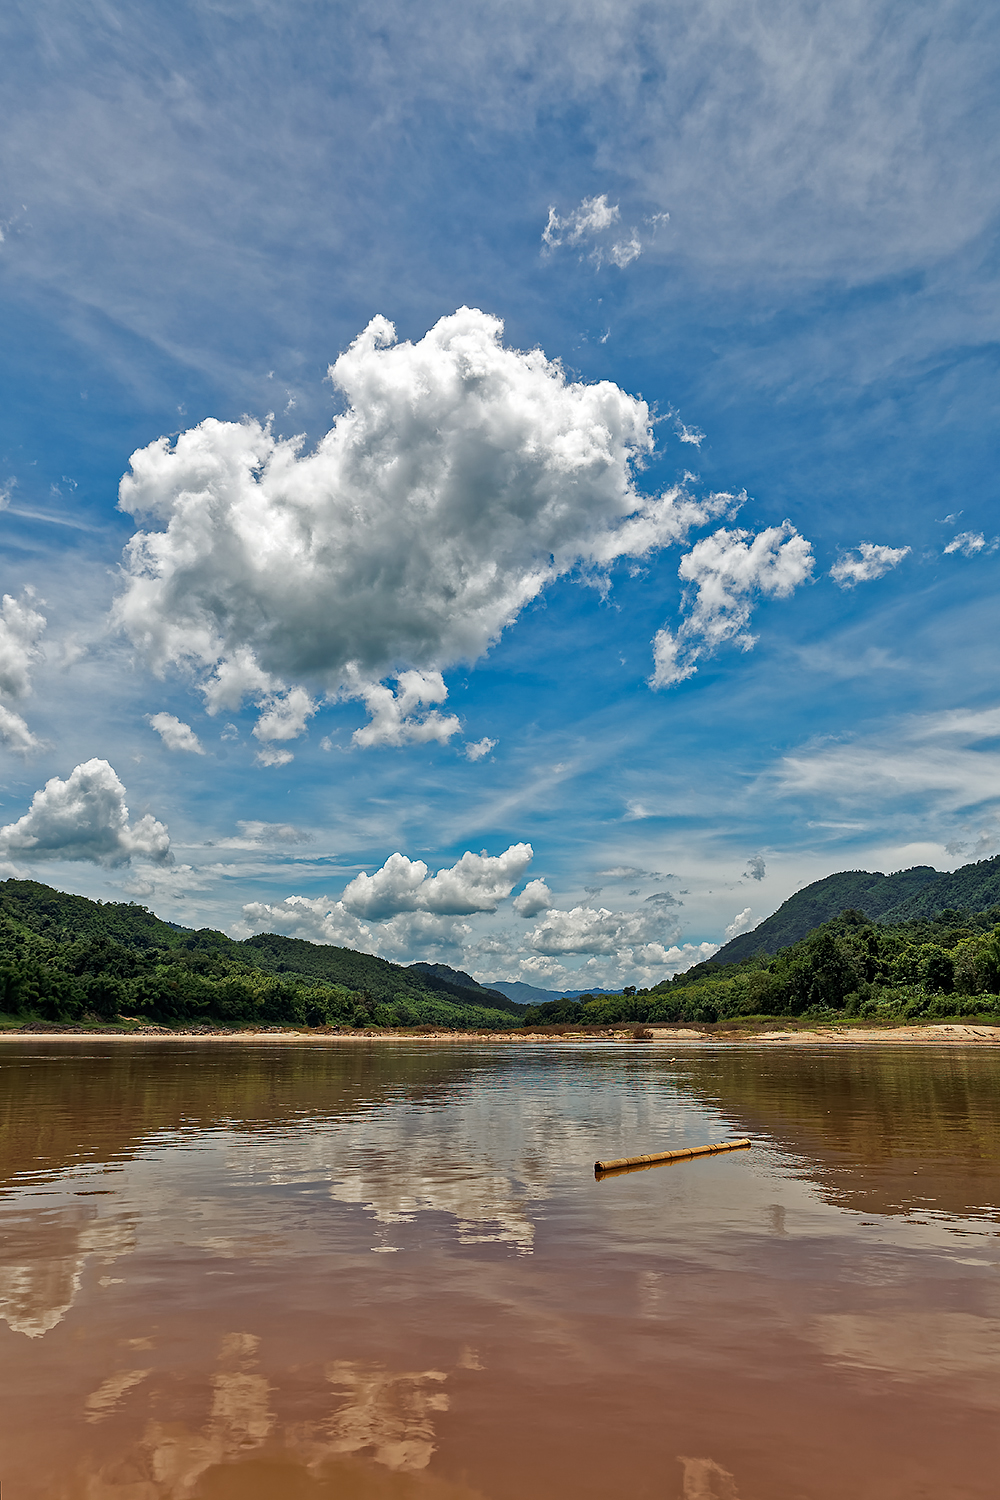 Traveling by boat up the Mekong River